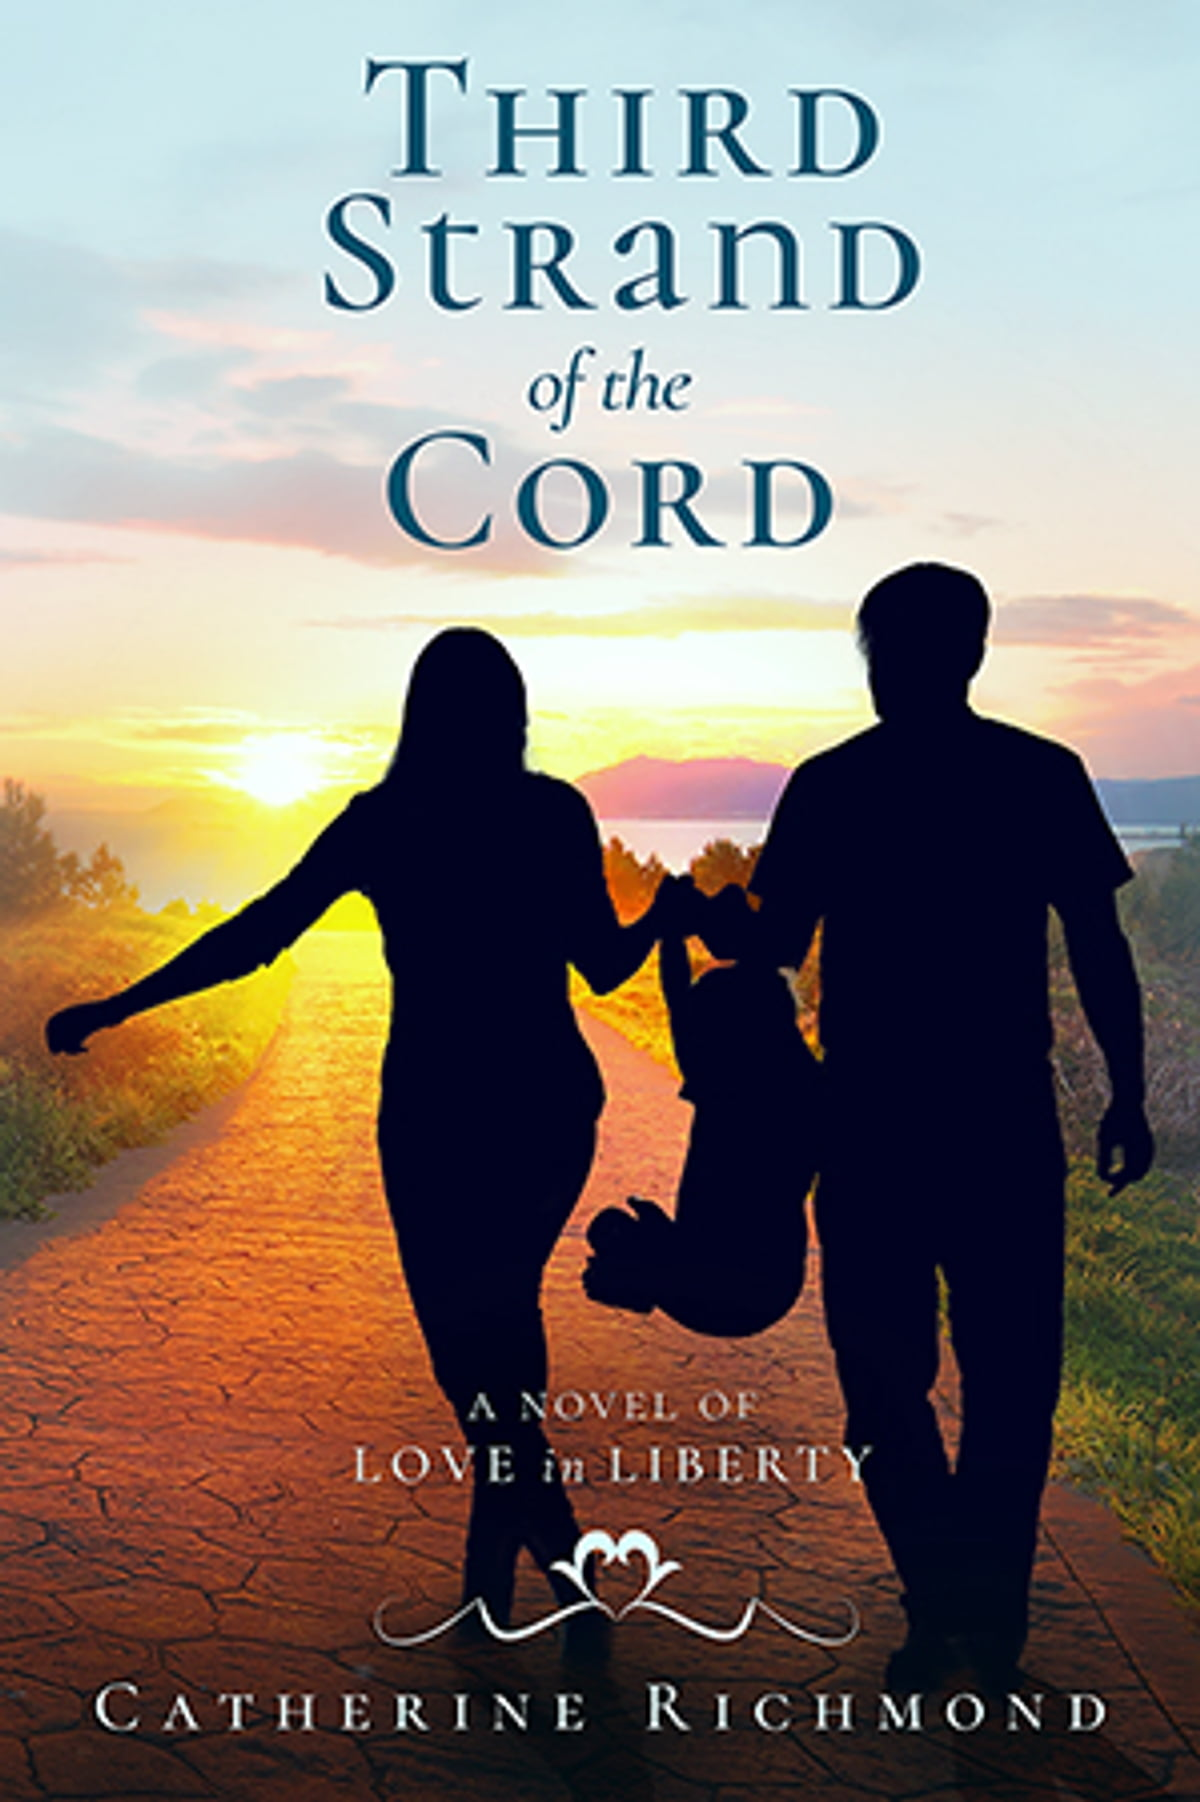 a warm place to call home by michael siemsen reviews a place called home book Third Strand of the Cord eBook by Catherine Richmond - 1230001368888 |  Rakuten Kobo